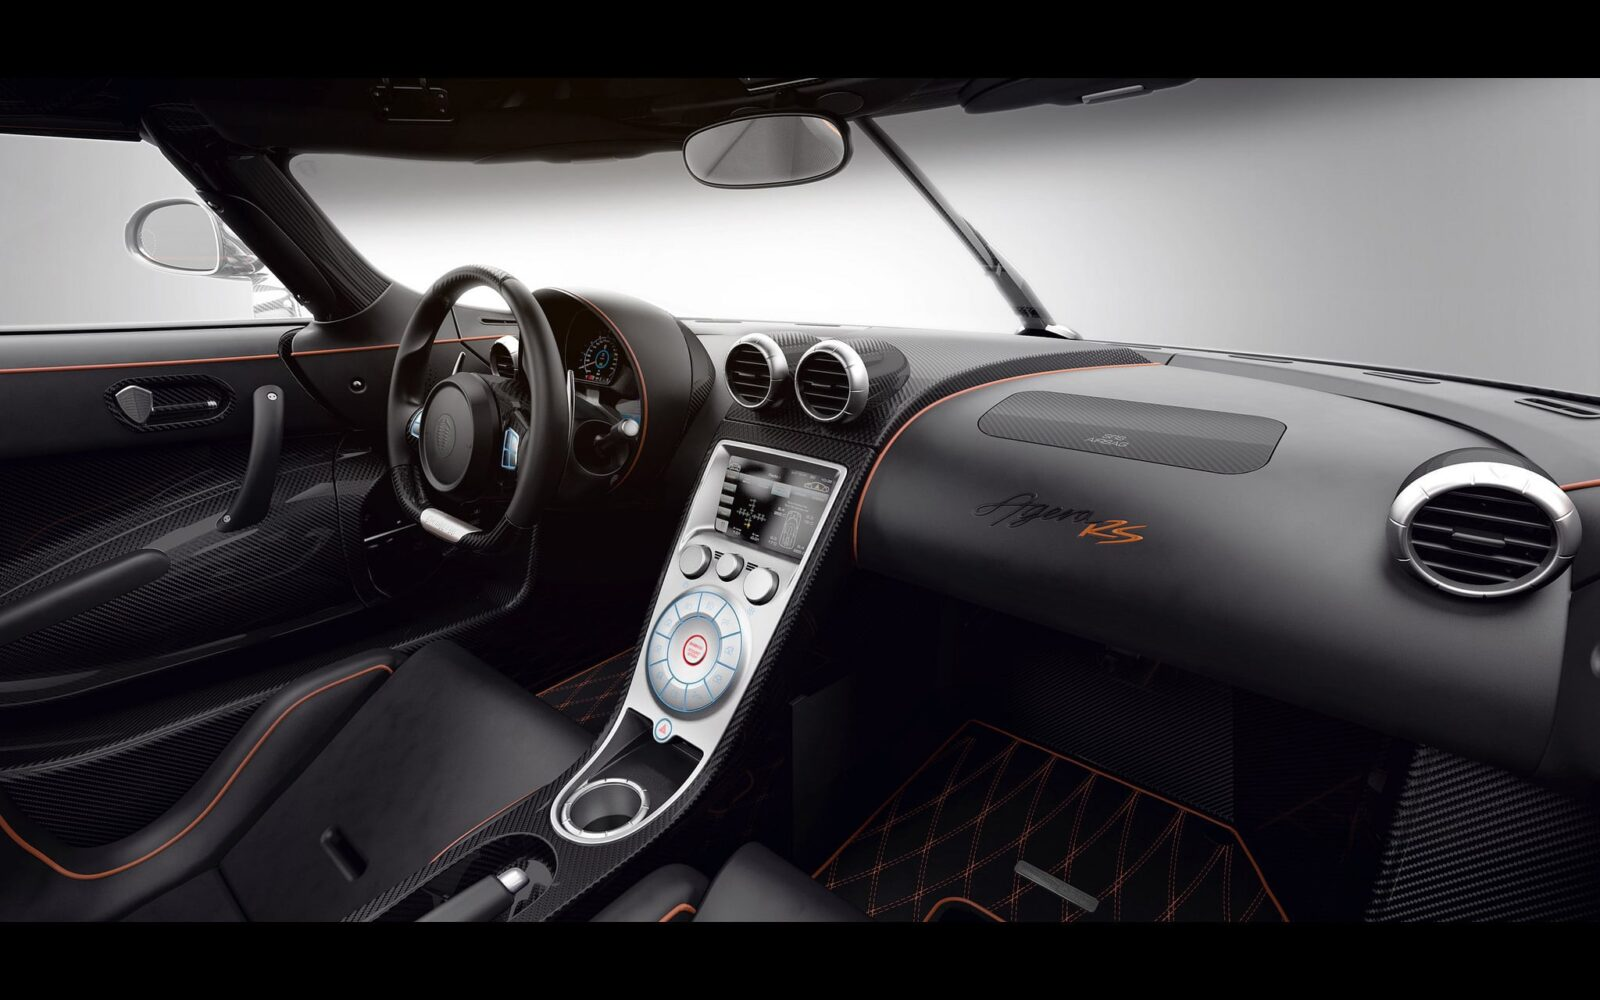 2016 Koenigsegg Agera RS interior wallpaper download